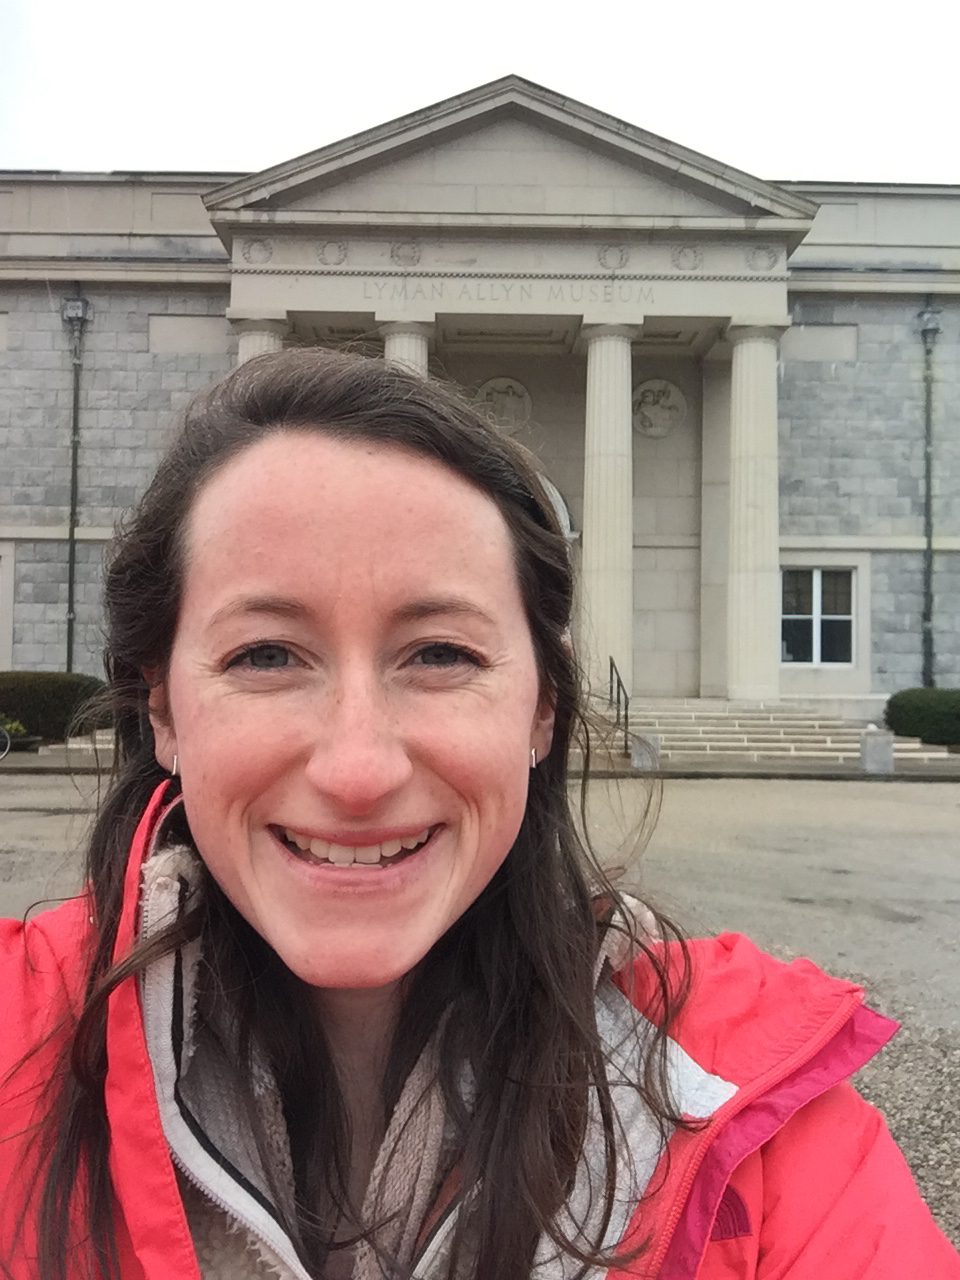 Avery takes a selfie in front of the Lyman Allyan Art Museum